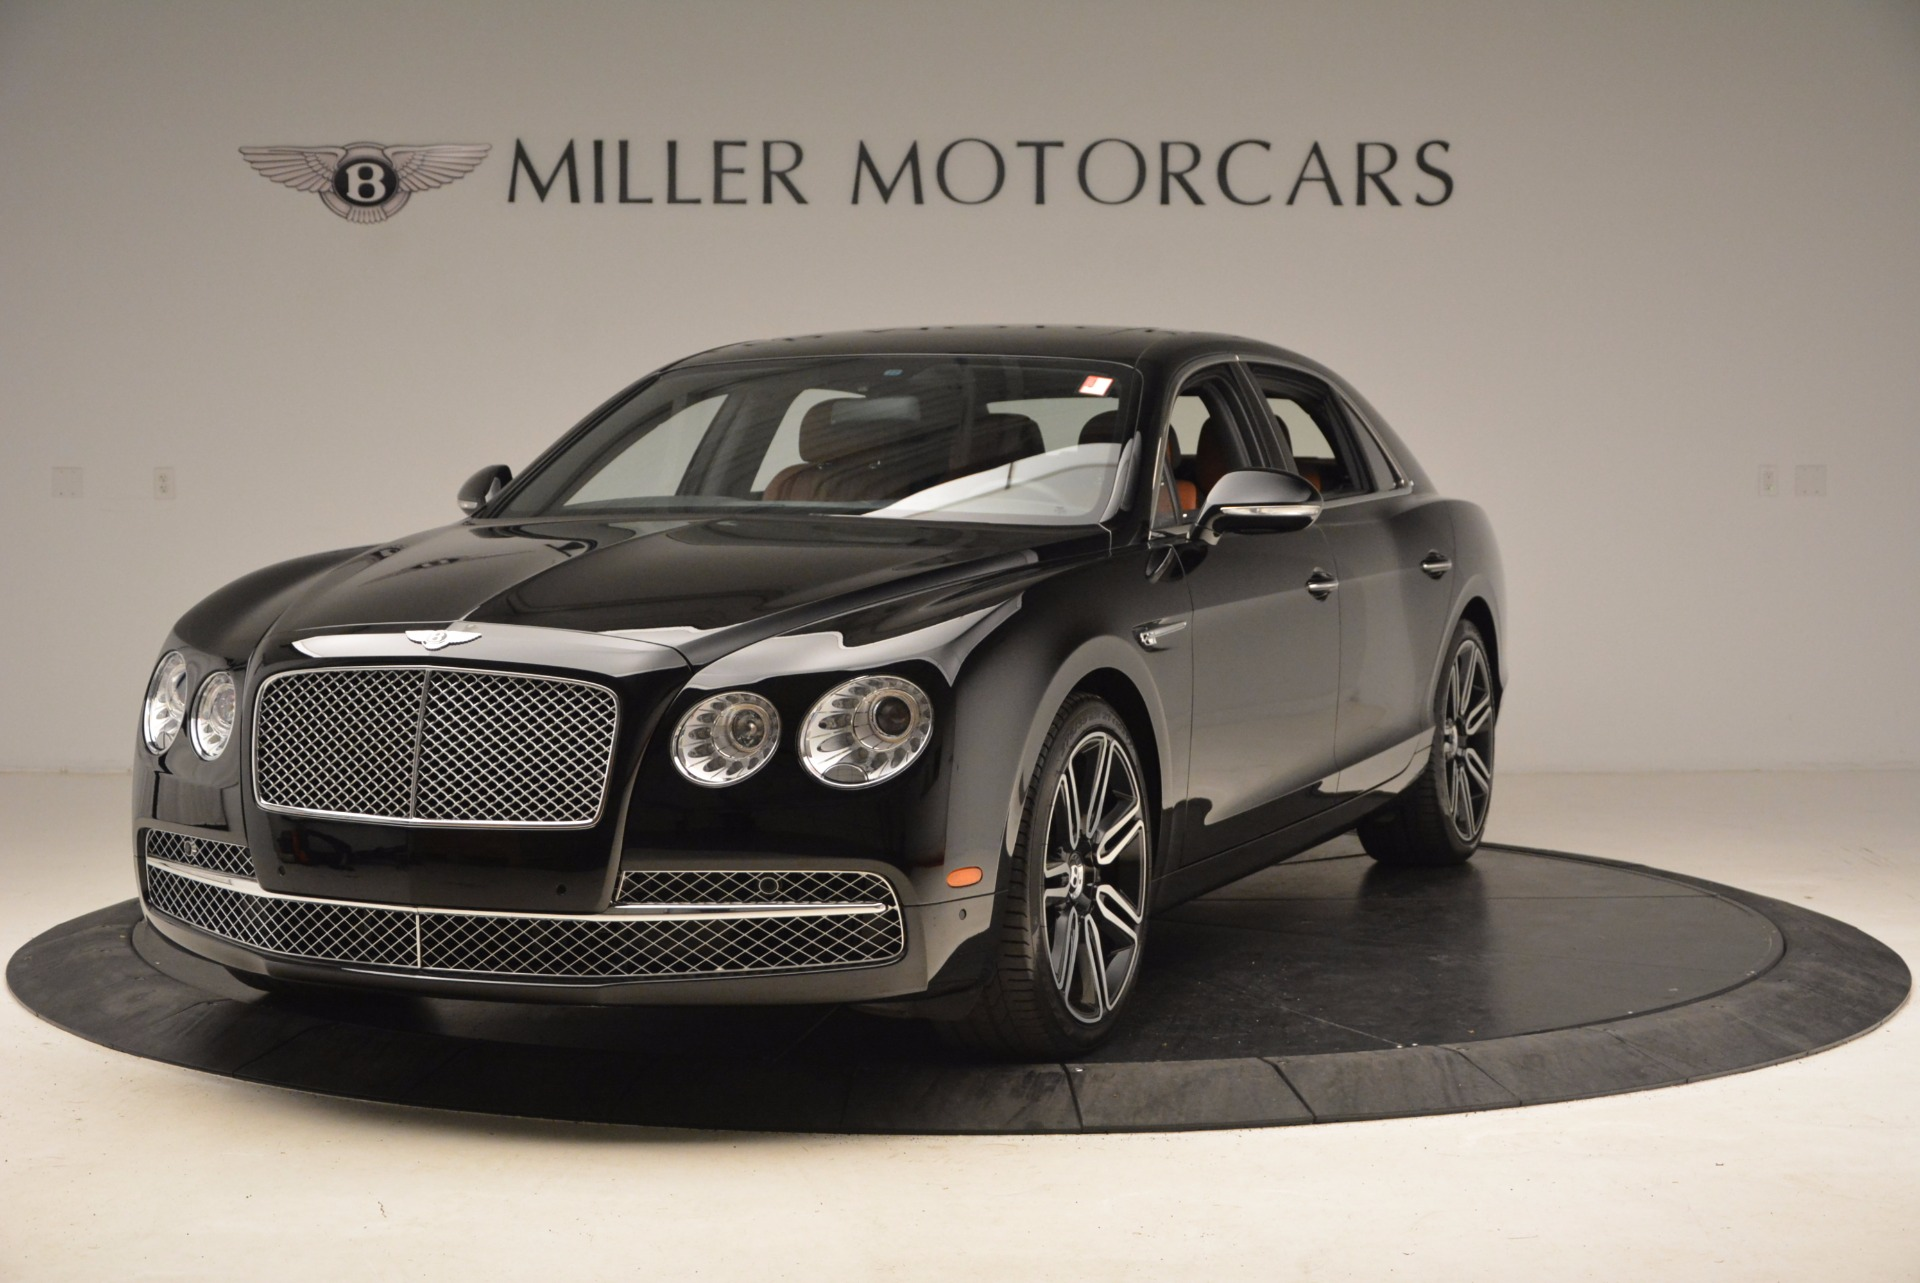 New 2017 Bentley Flying Spur W12 for sale Sold at Rolls-Royce Motor Cars Greenwich in Greenwich CT 06830 1